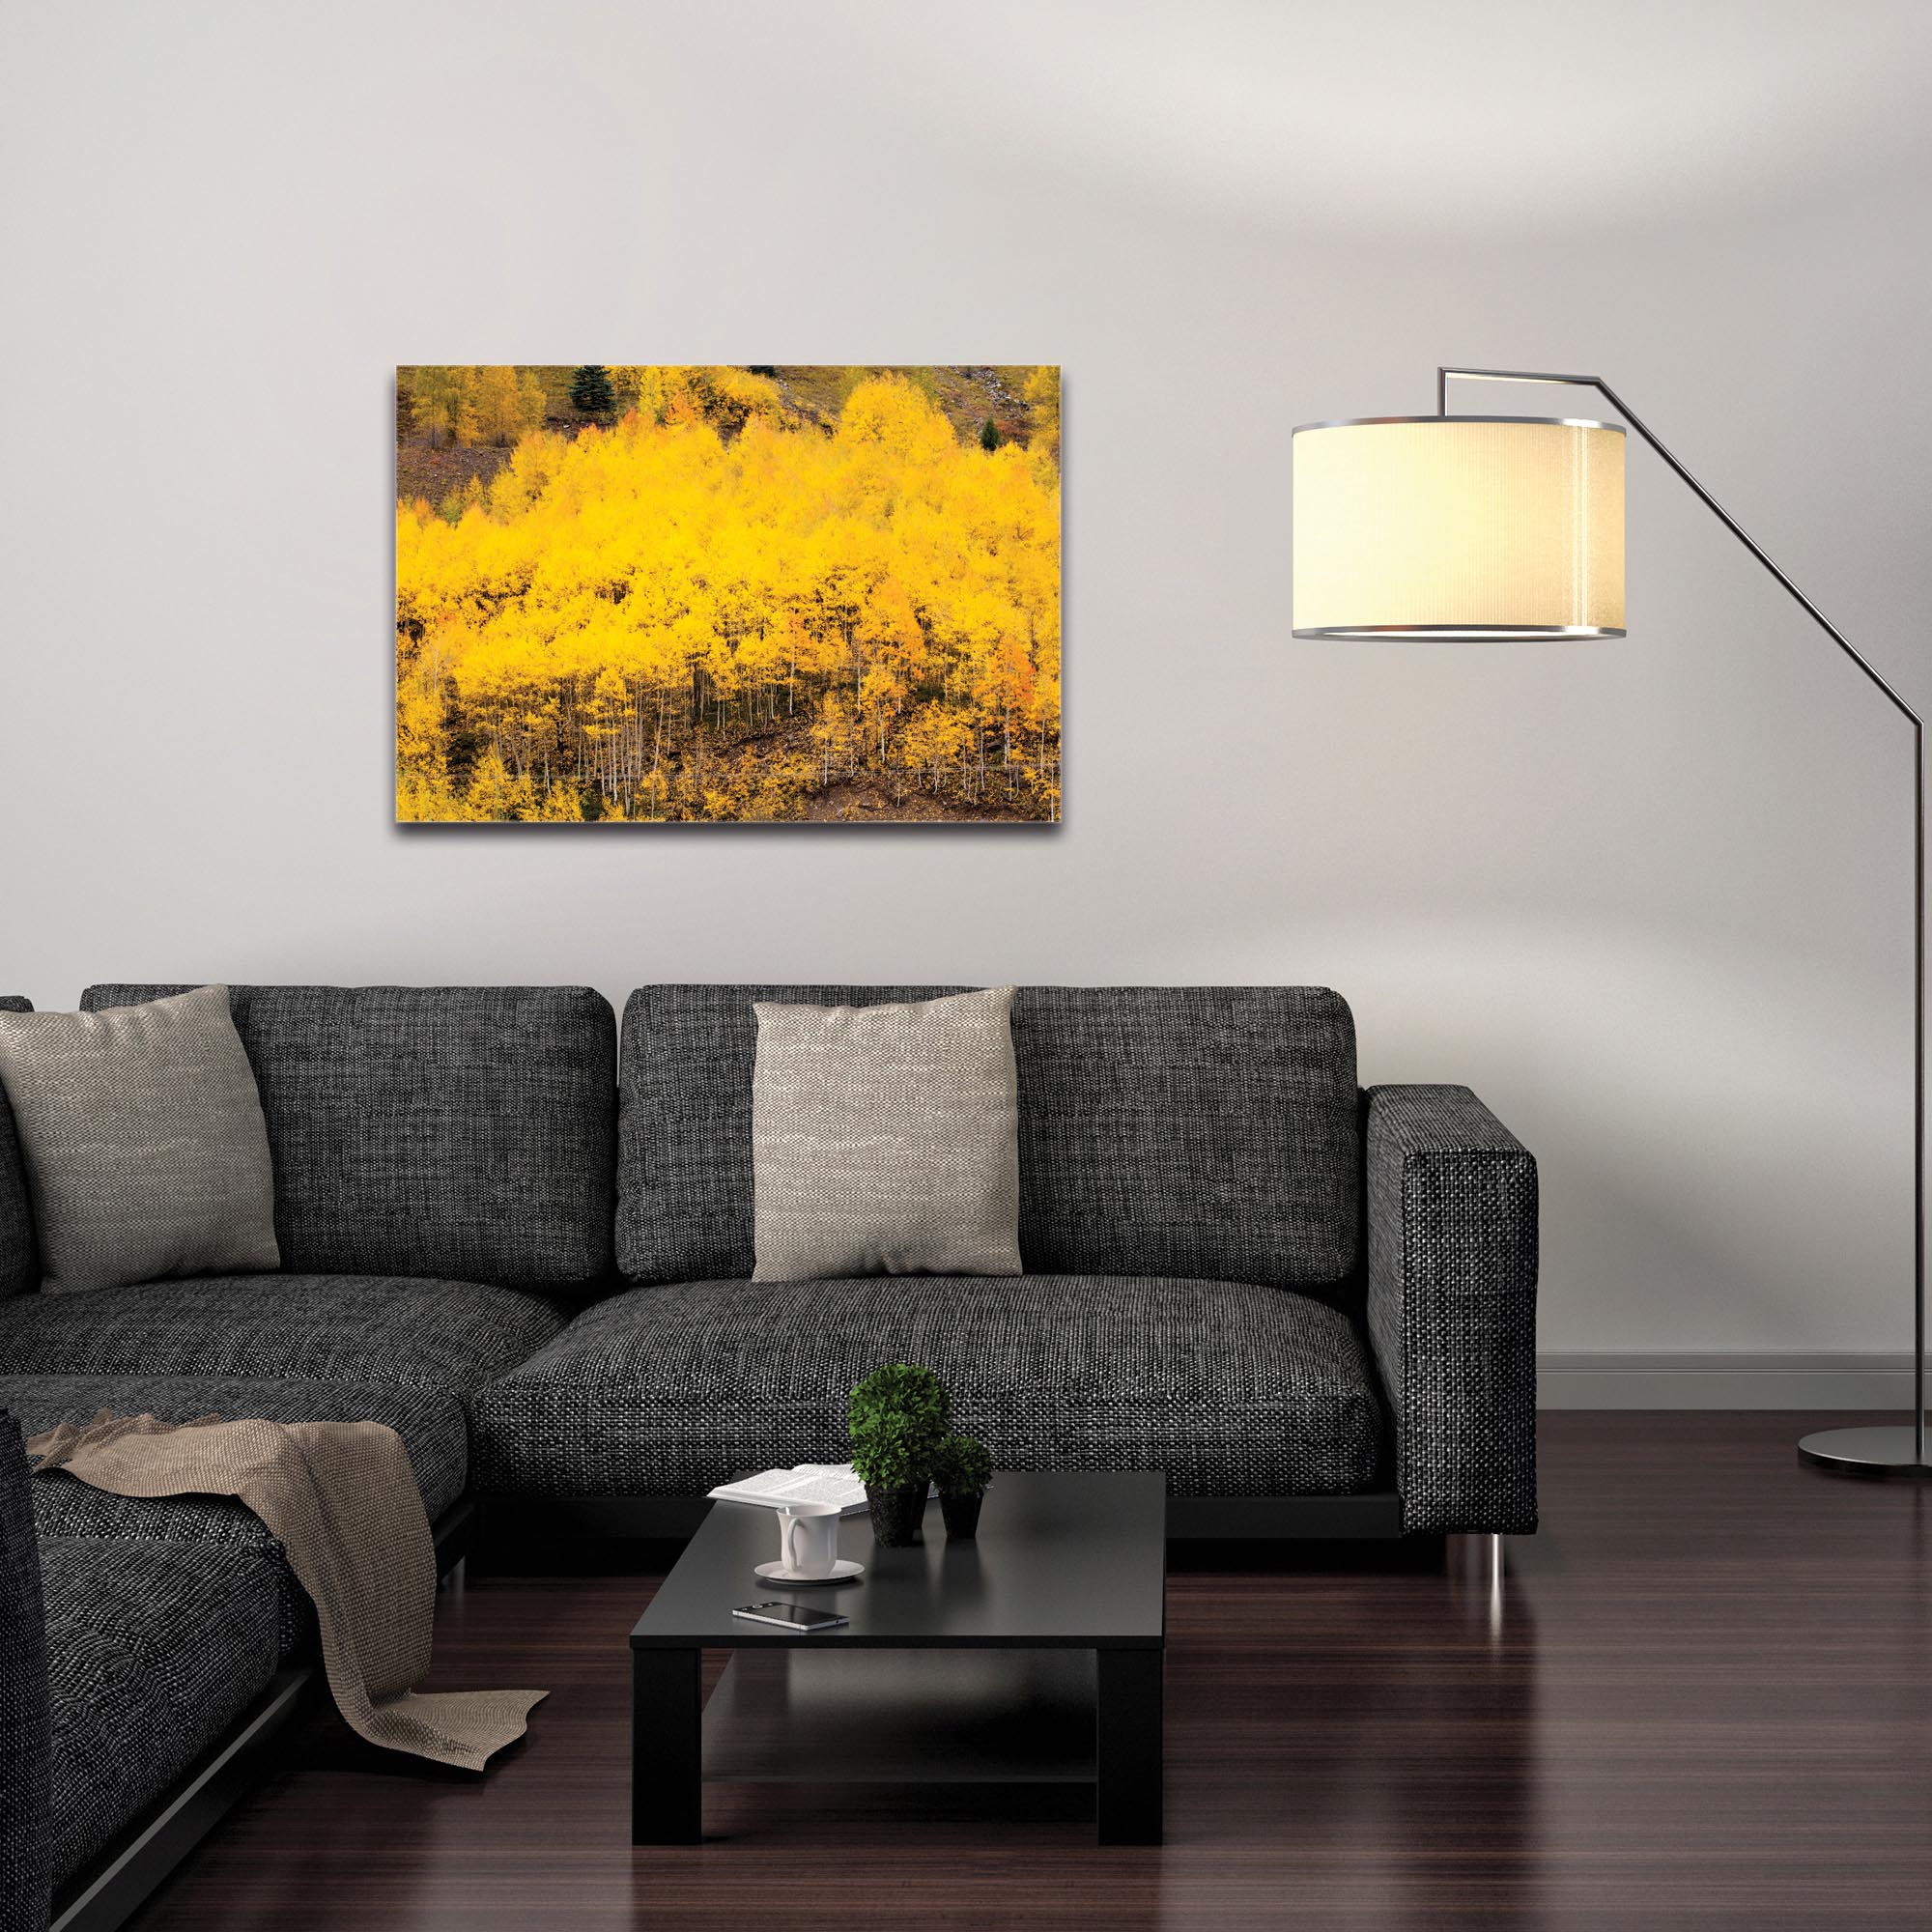 Landscape Photography 'Aspen Autumn' - Autumn Nature Art on Metal or Plexiglass - Image 3